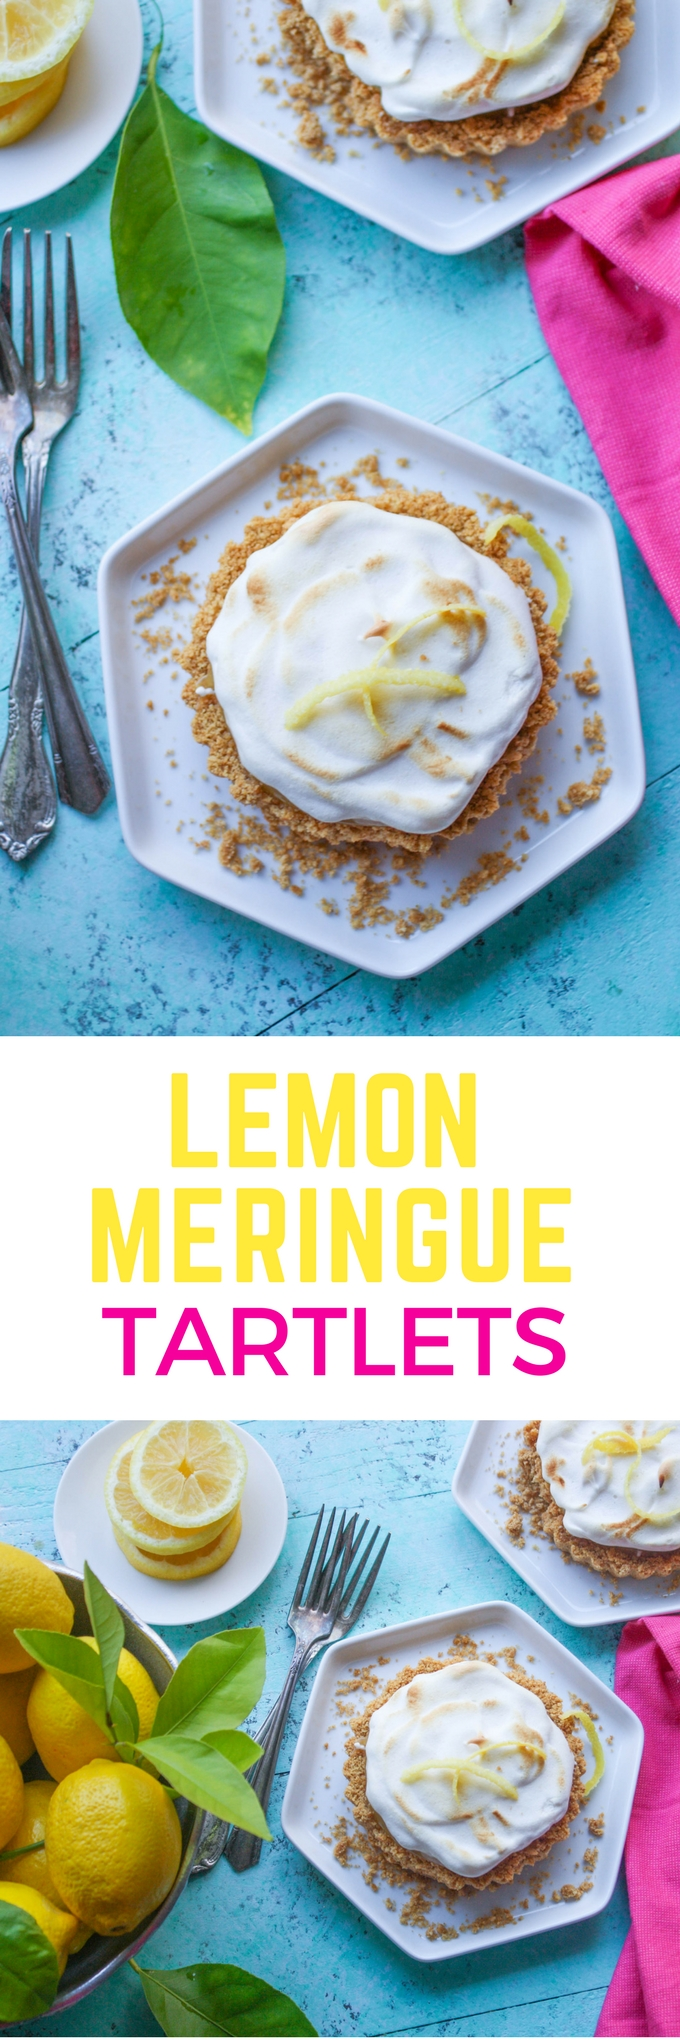 Lemon Meringue Tartlets are a fabulous dessert that make a fun presentation. You'll love Lemon Meringue Tartlets as a treat for your next special occasion.